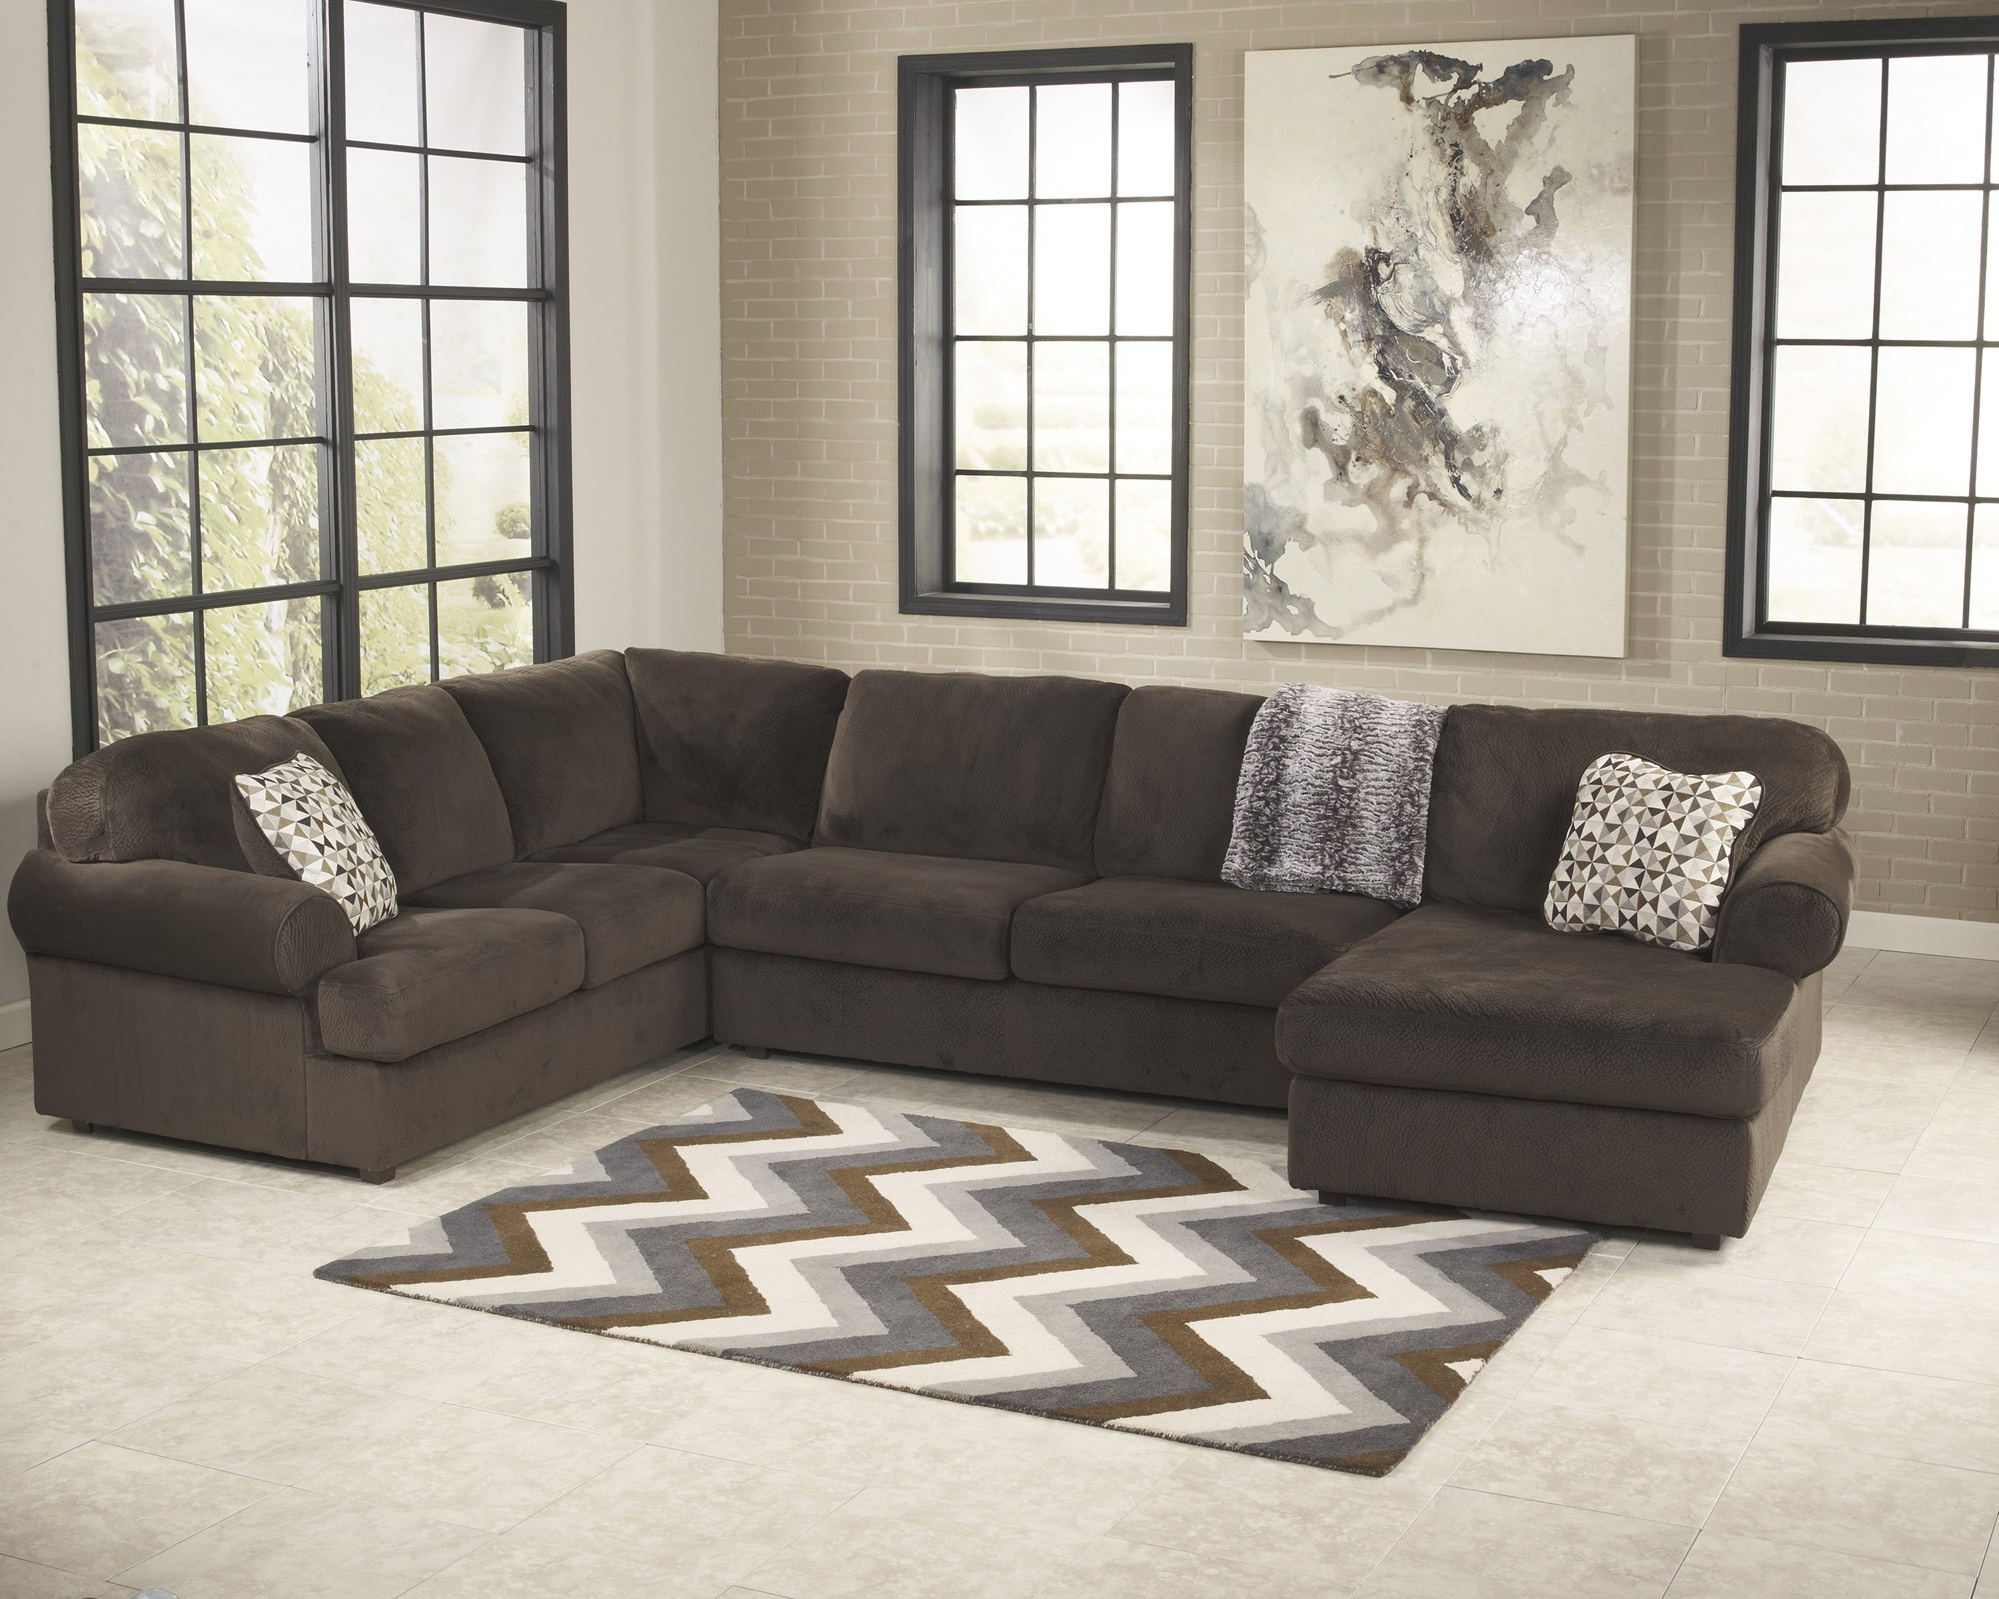 Malbry Point 3 Piece Sectionals With Raf Chaise Throughout Famous 3 Chaise Sectional (View 10 of 20)